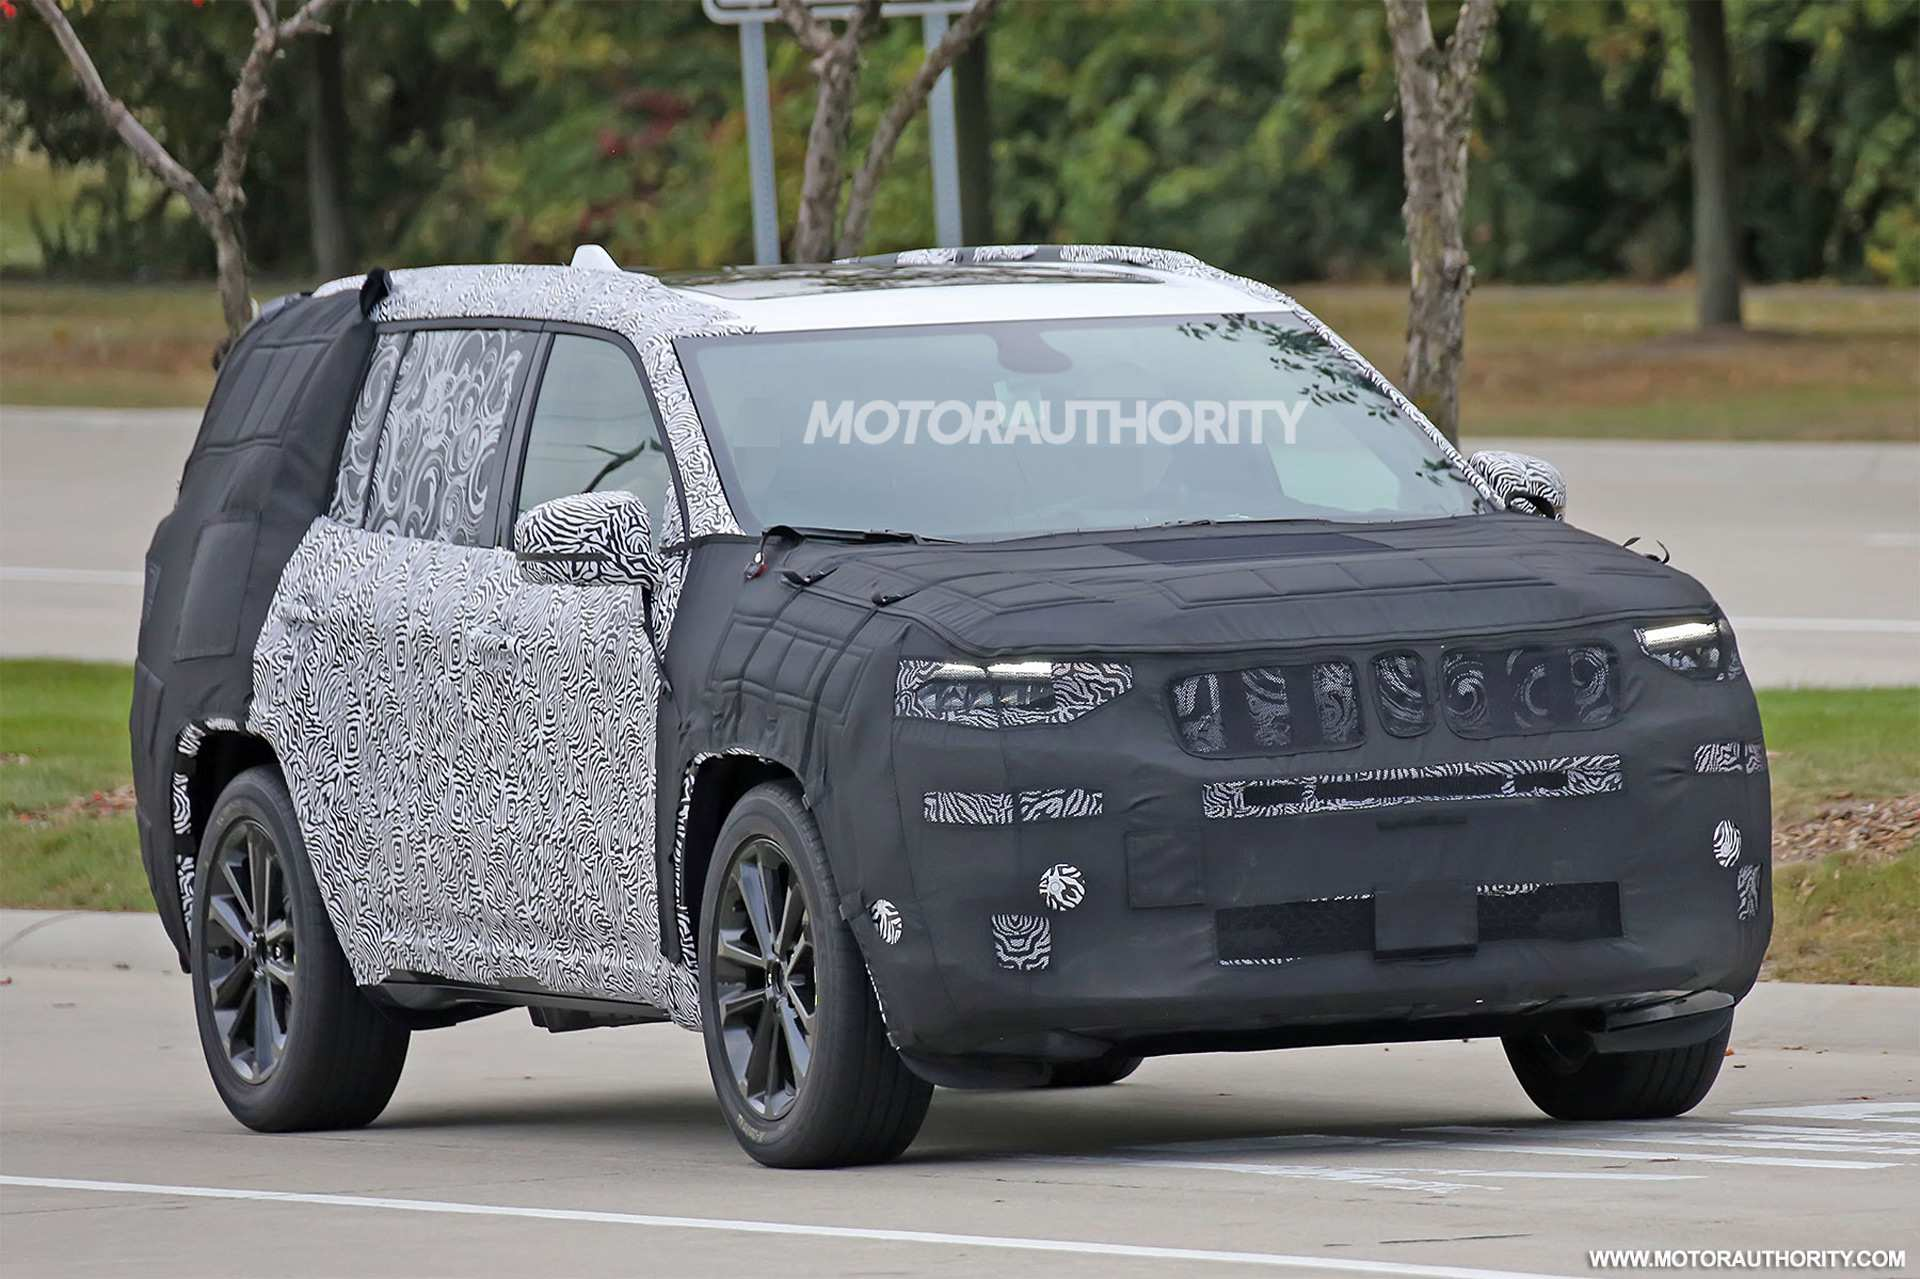 68 All New 2019 Jeep 3Rd Row Pictures